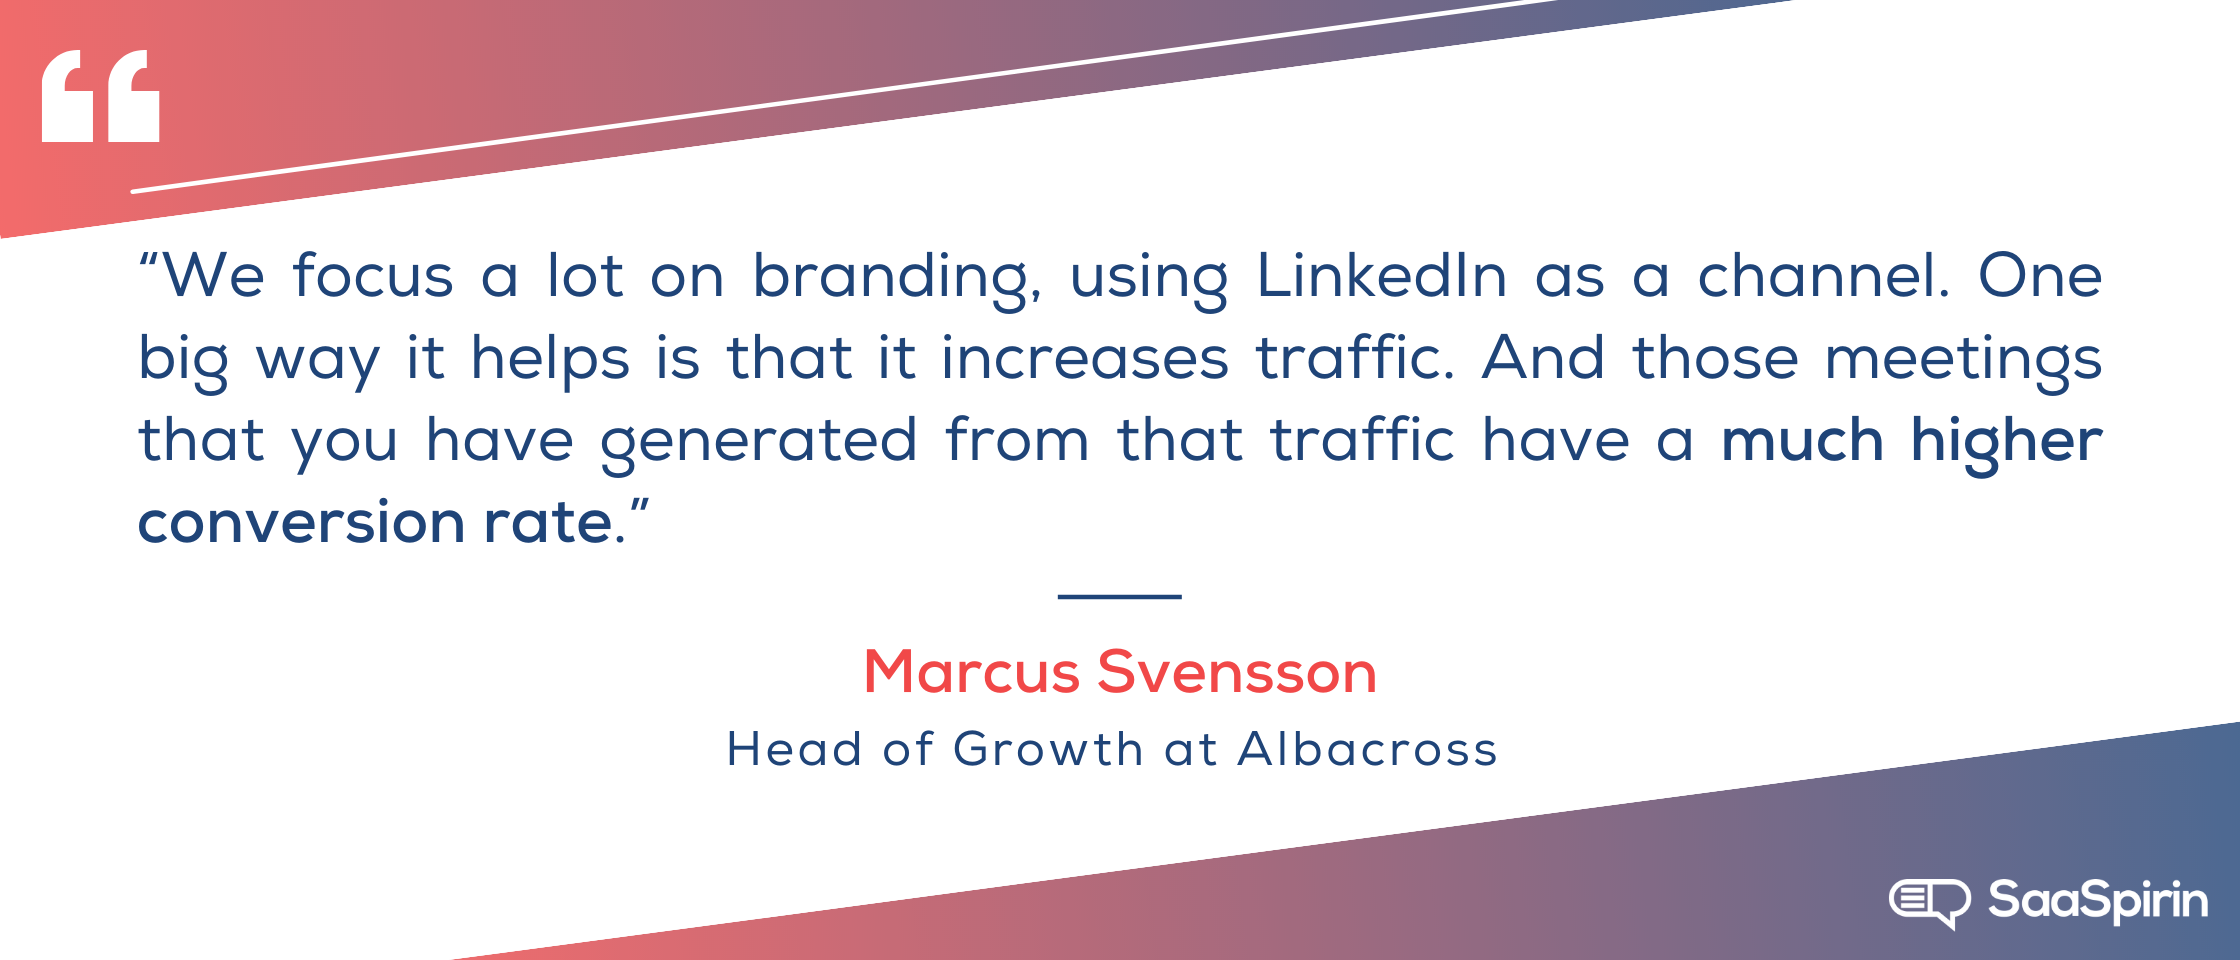 We-focus-a-lot-on-branding-using-LinkedIn-as-a-channel-One-big-way-it-helps-is-that-it-increases-traffic-And-those-meetings-that-you-have-generated-from-that-traffic-have-a-much-higher-conversion-rate.png